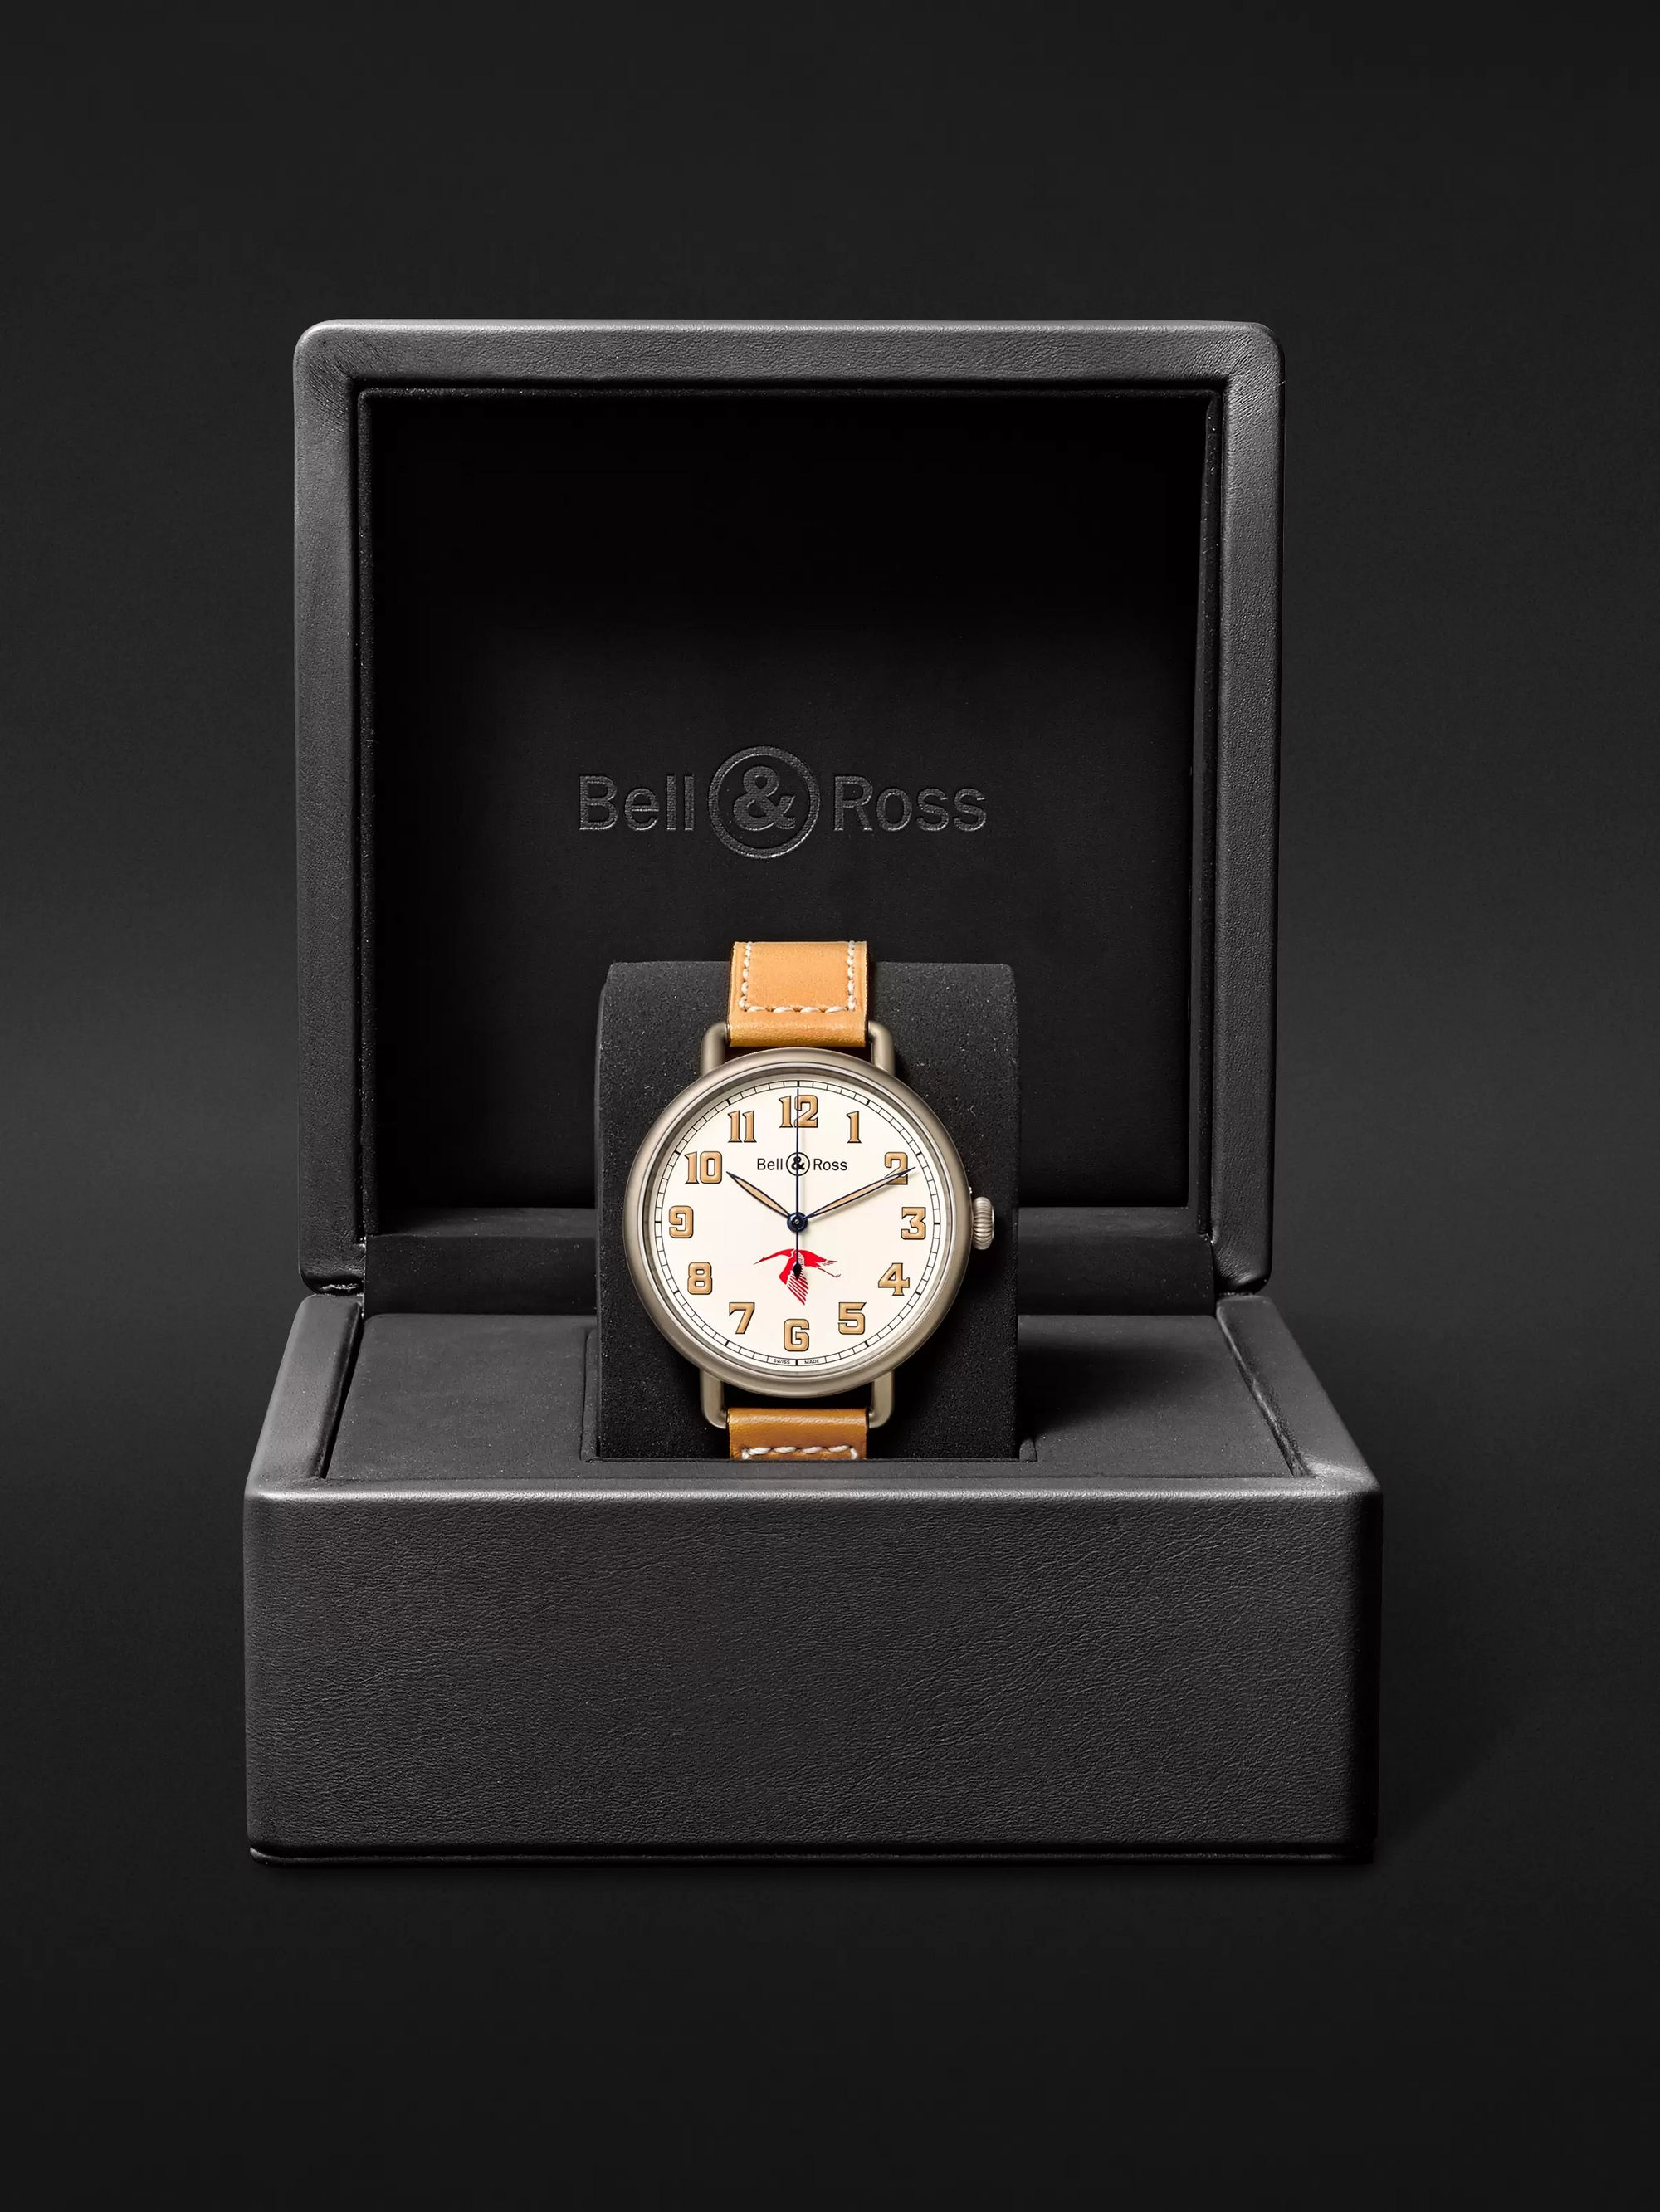 Bell & Ross WW1-92 45mm Steel and Leather Watch, Ref. No. BRWW192-GUYNEMER